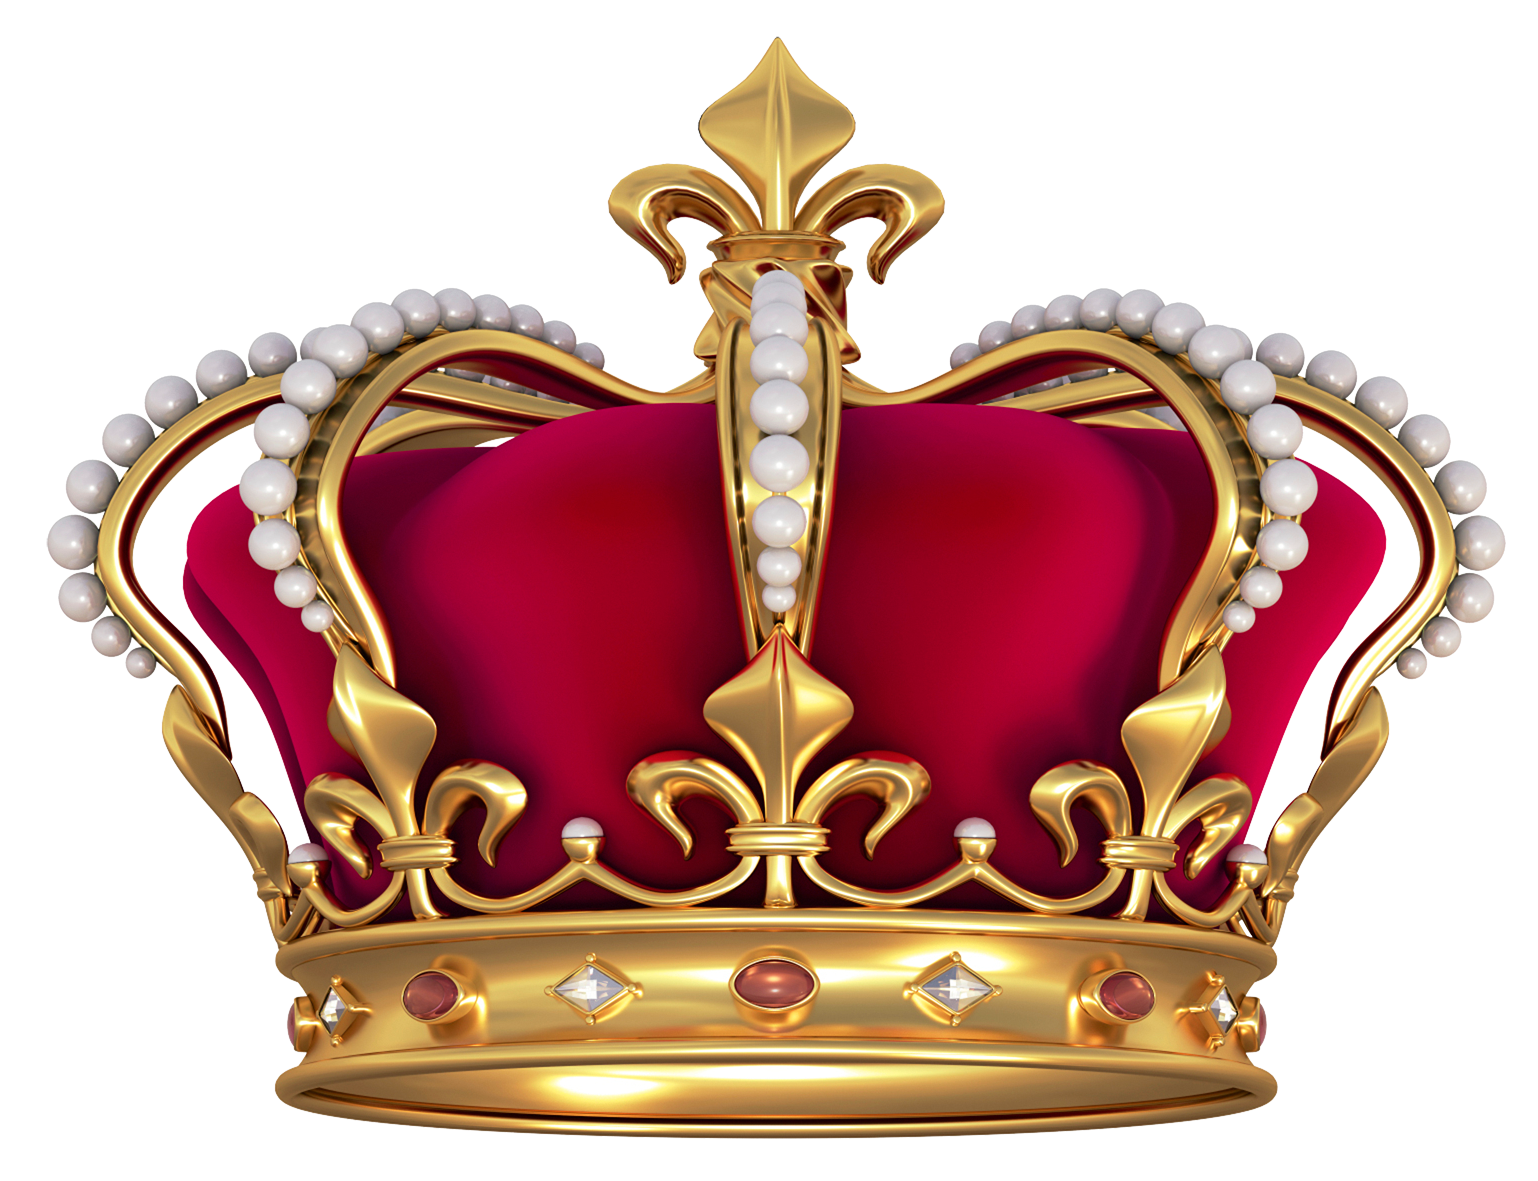 King and queen crowns png. Red gold crown with